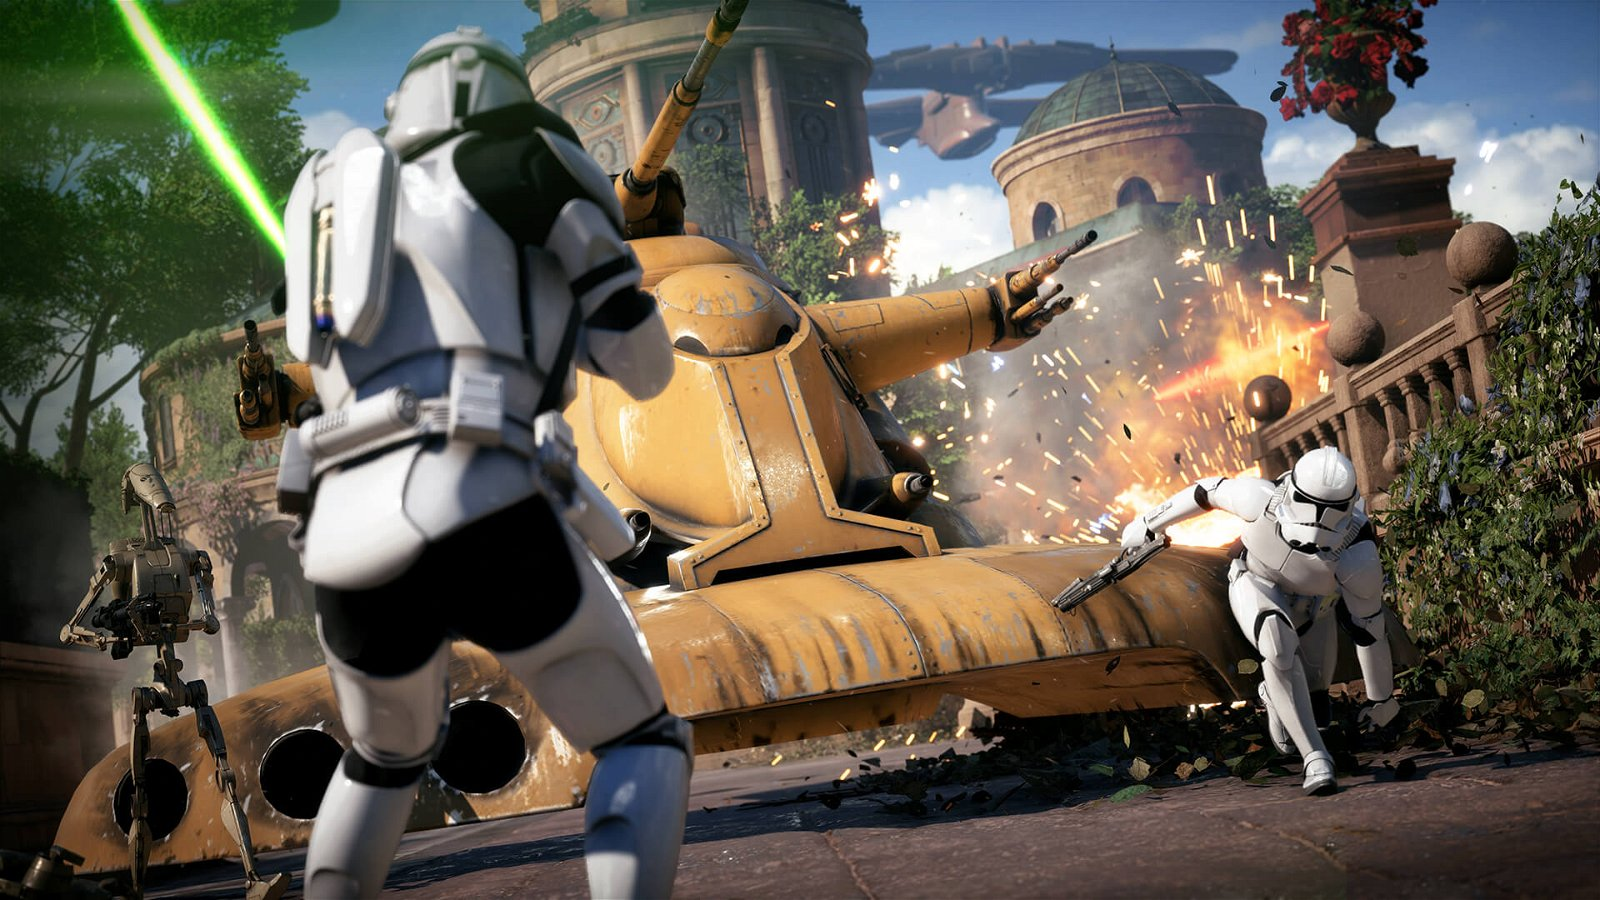 EA Announces Star Wars BattleFront II Beta, Slated For October